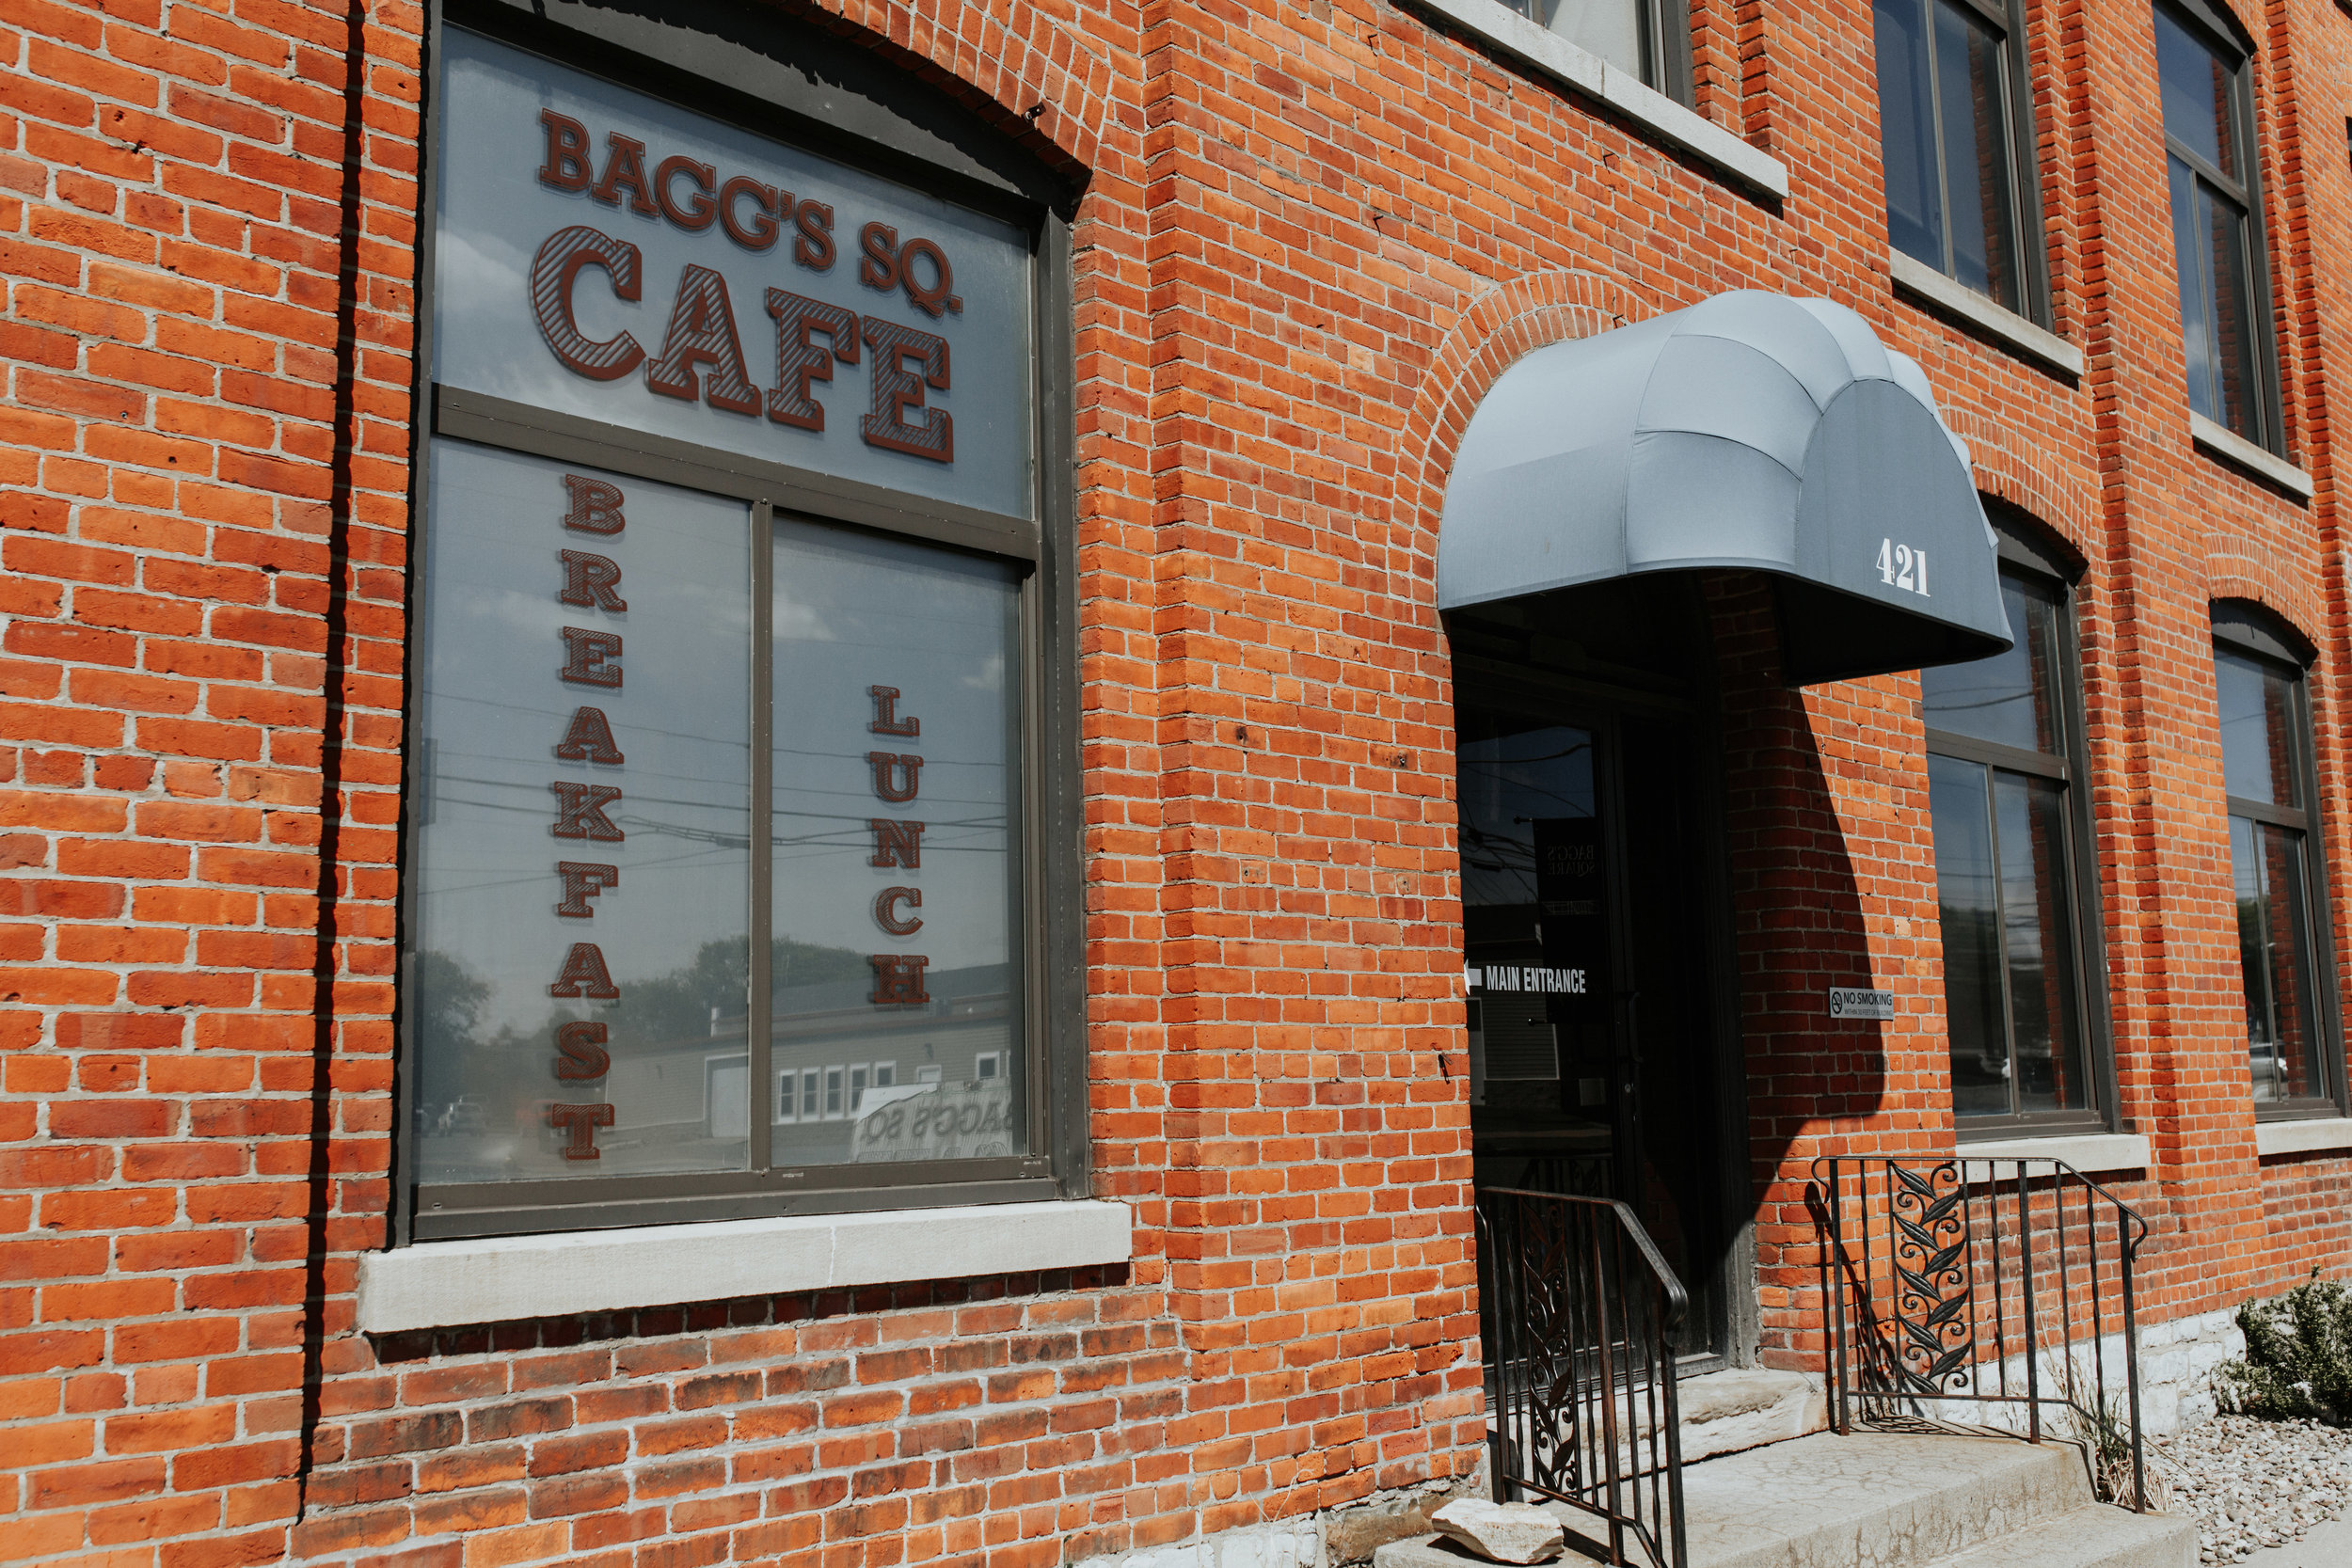 THE BAGG'S SQ CAFE